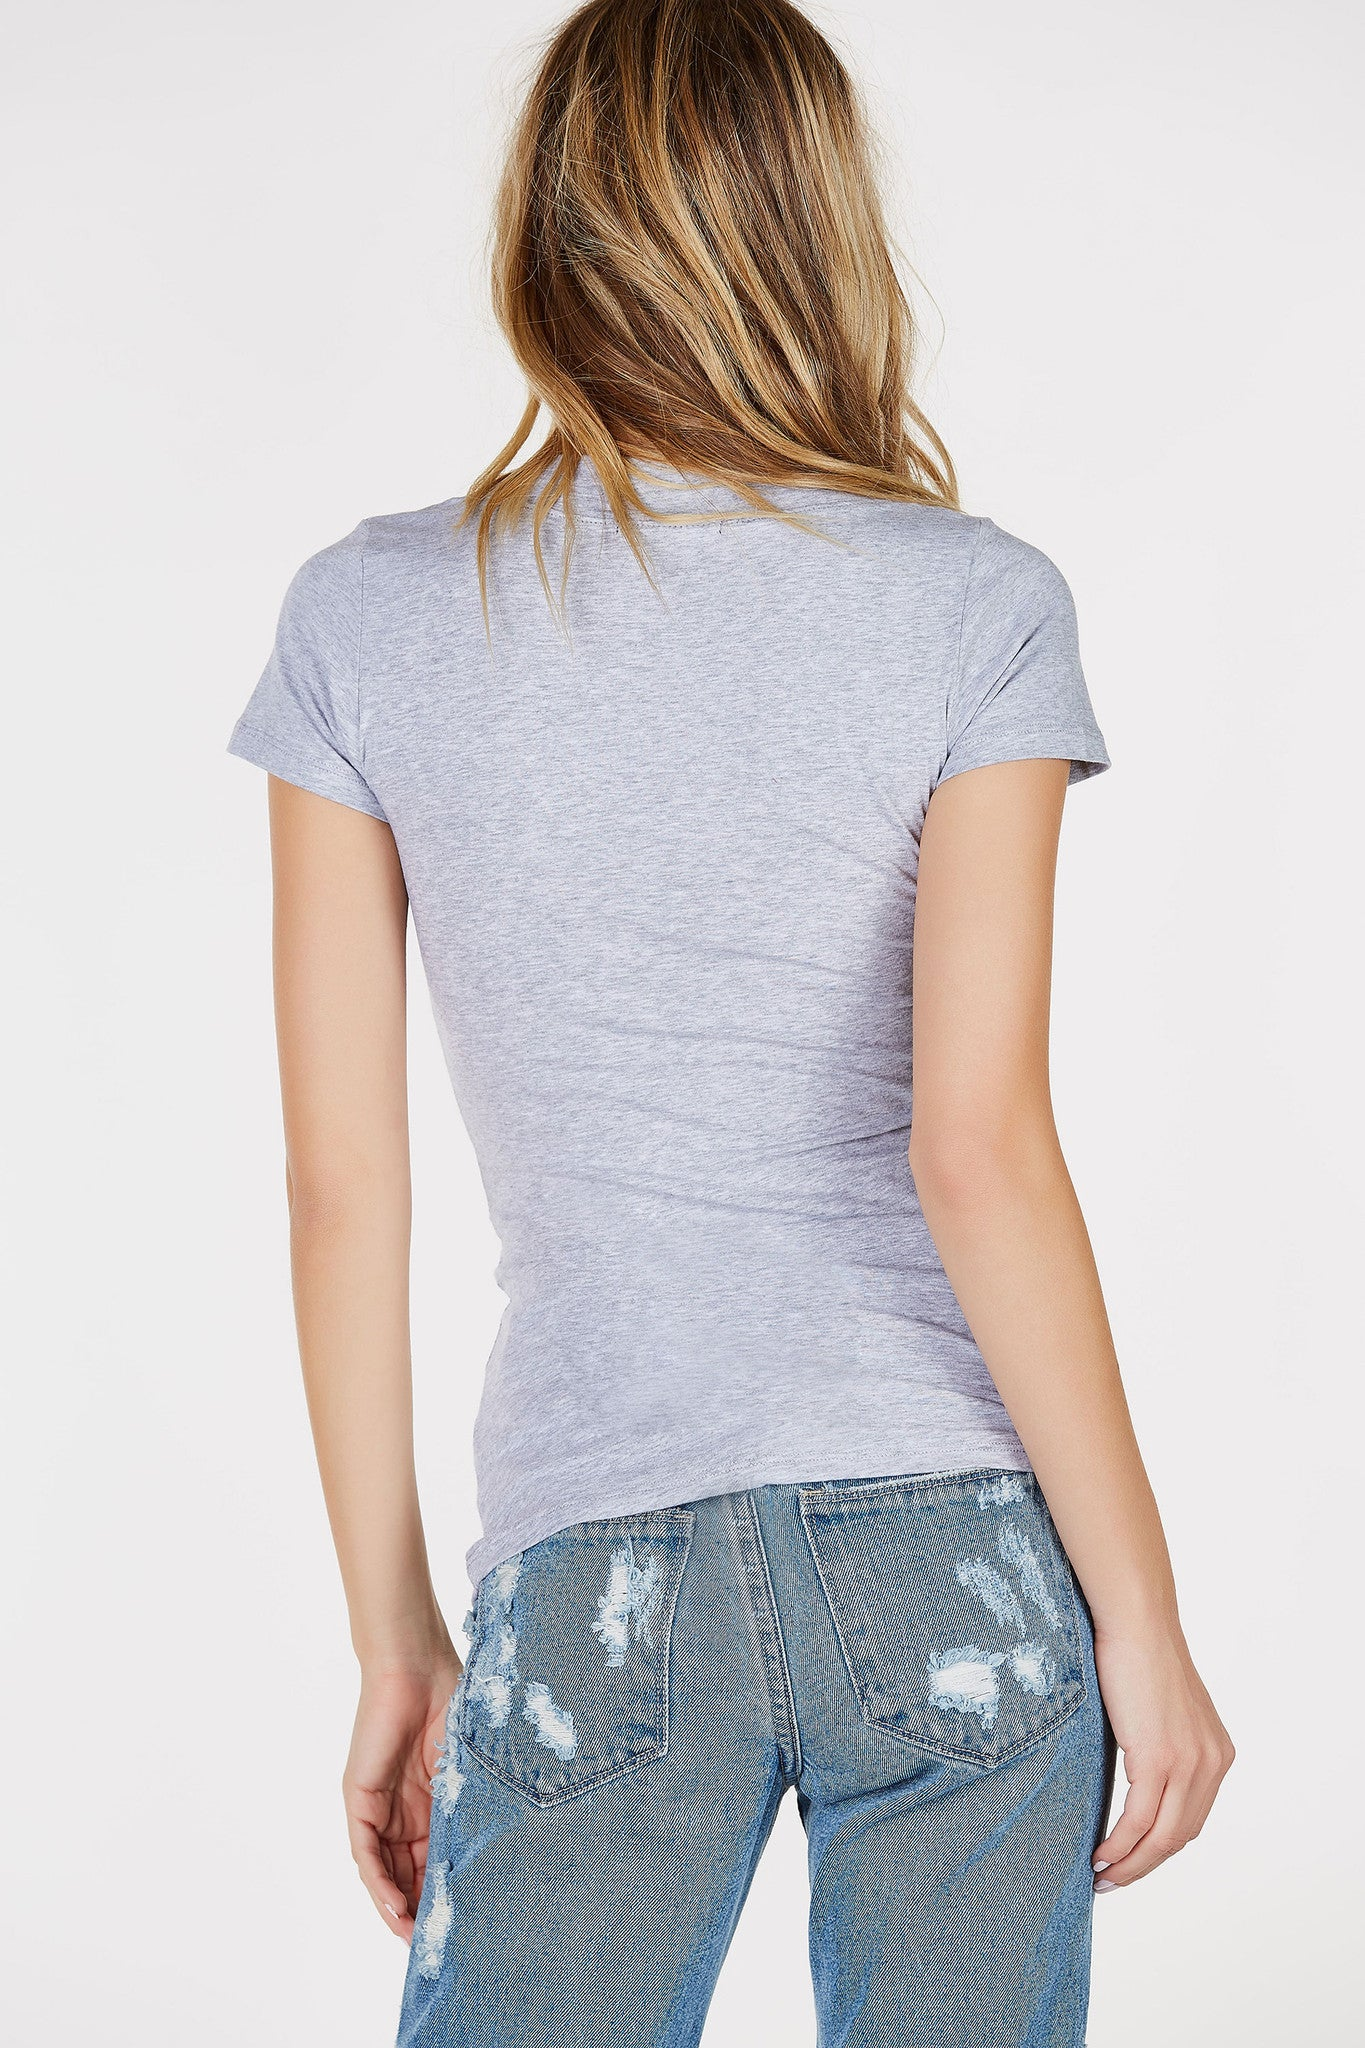 Super soft basic v-neck tee. Perfect for sporting on the daily. Lightweight and thin--great for layering.